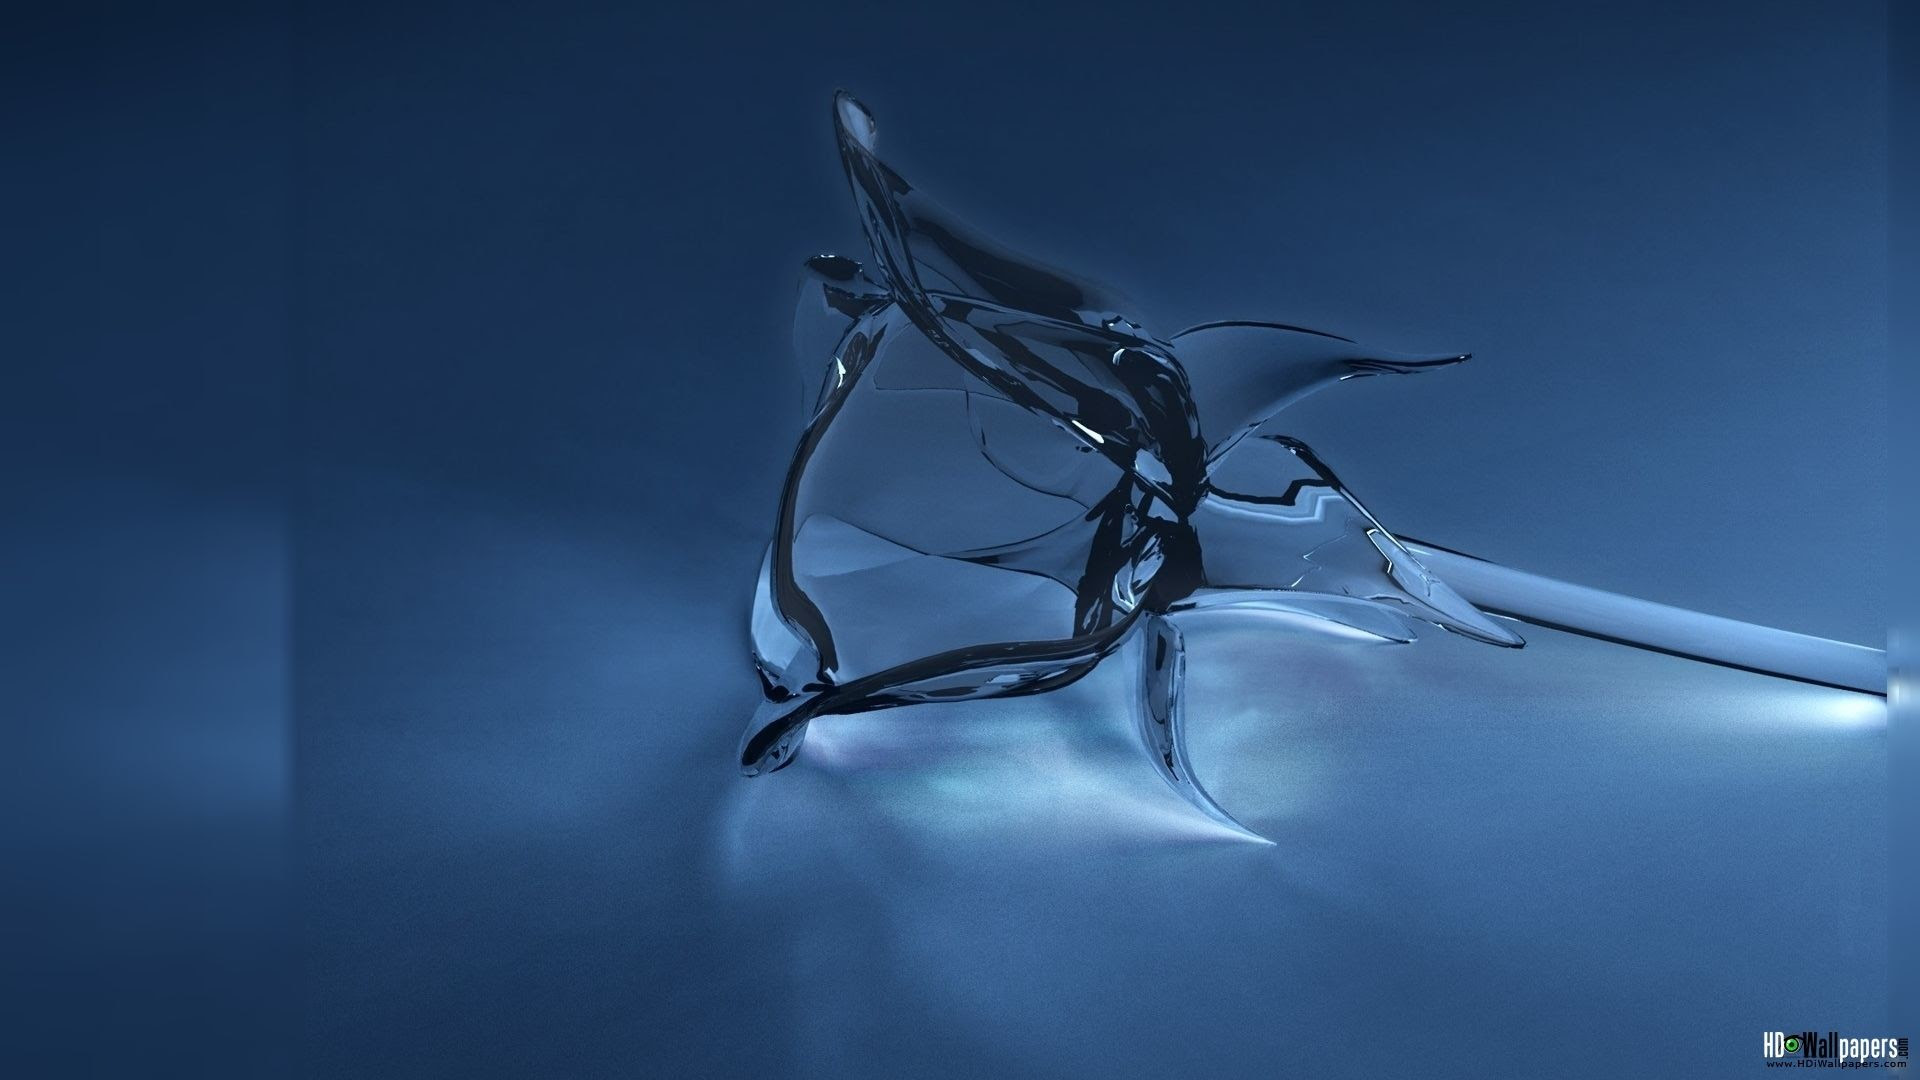 Iphone h king: Live 3d Water Wallpaper